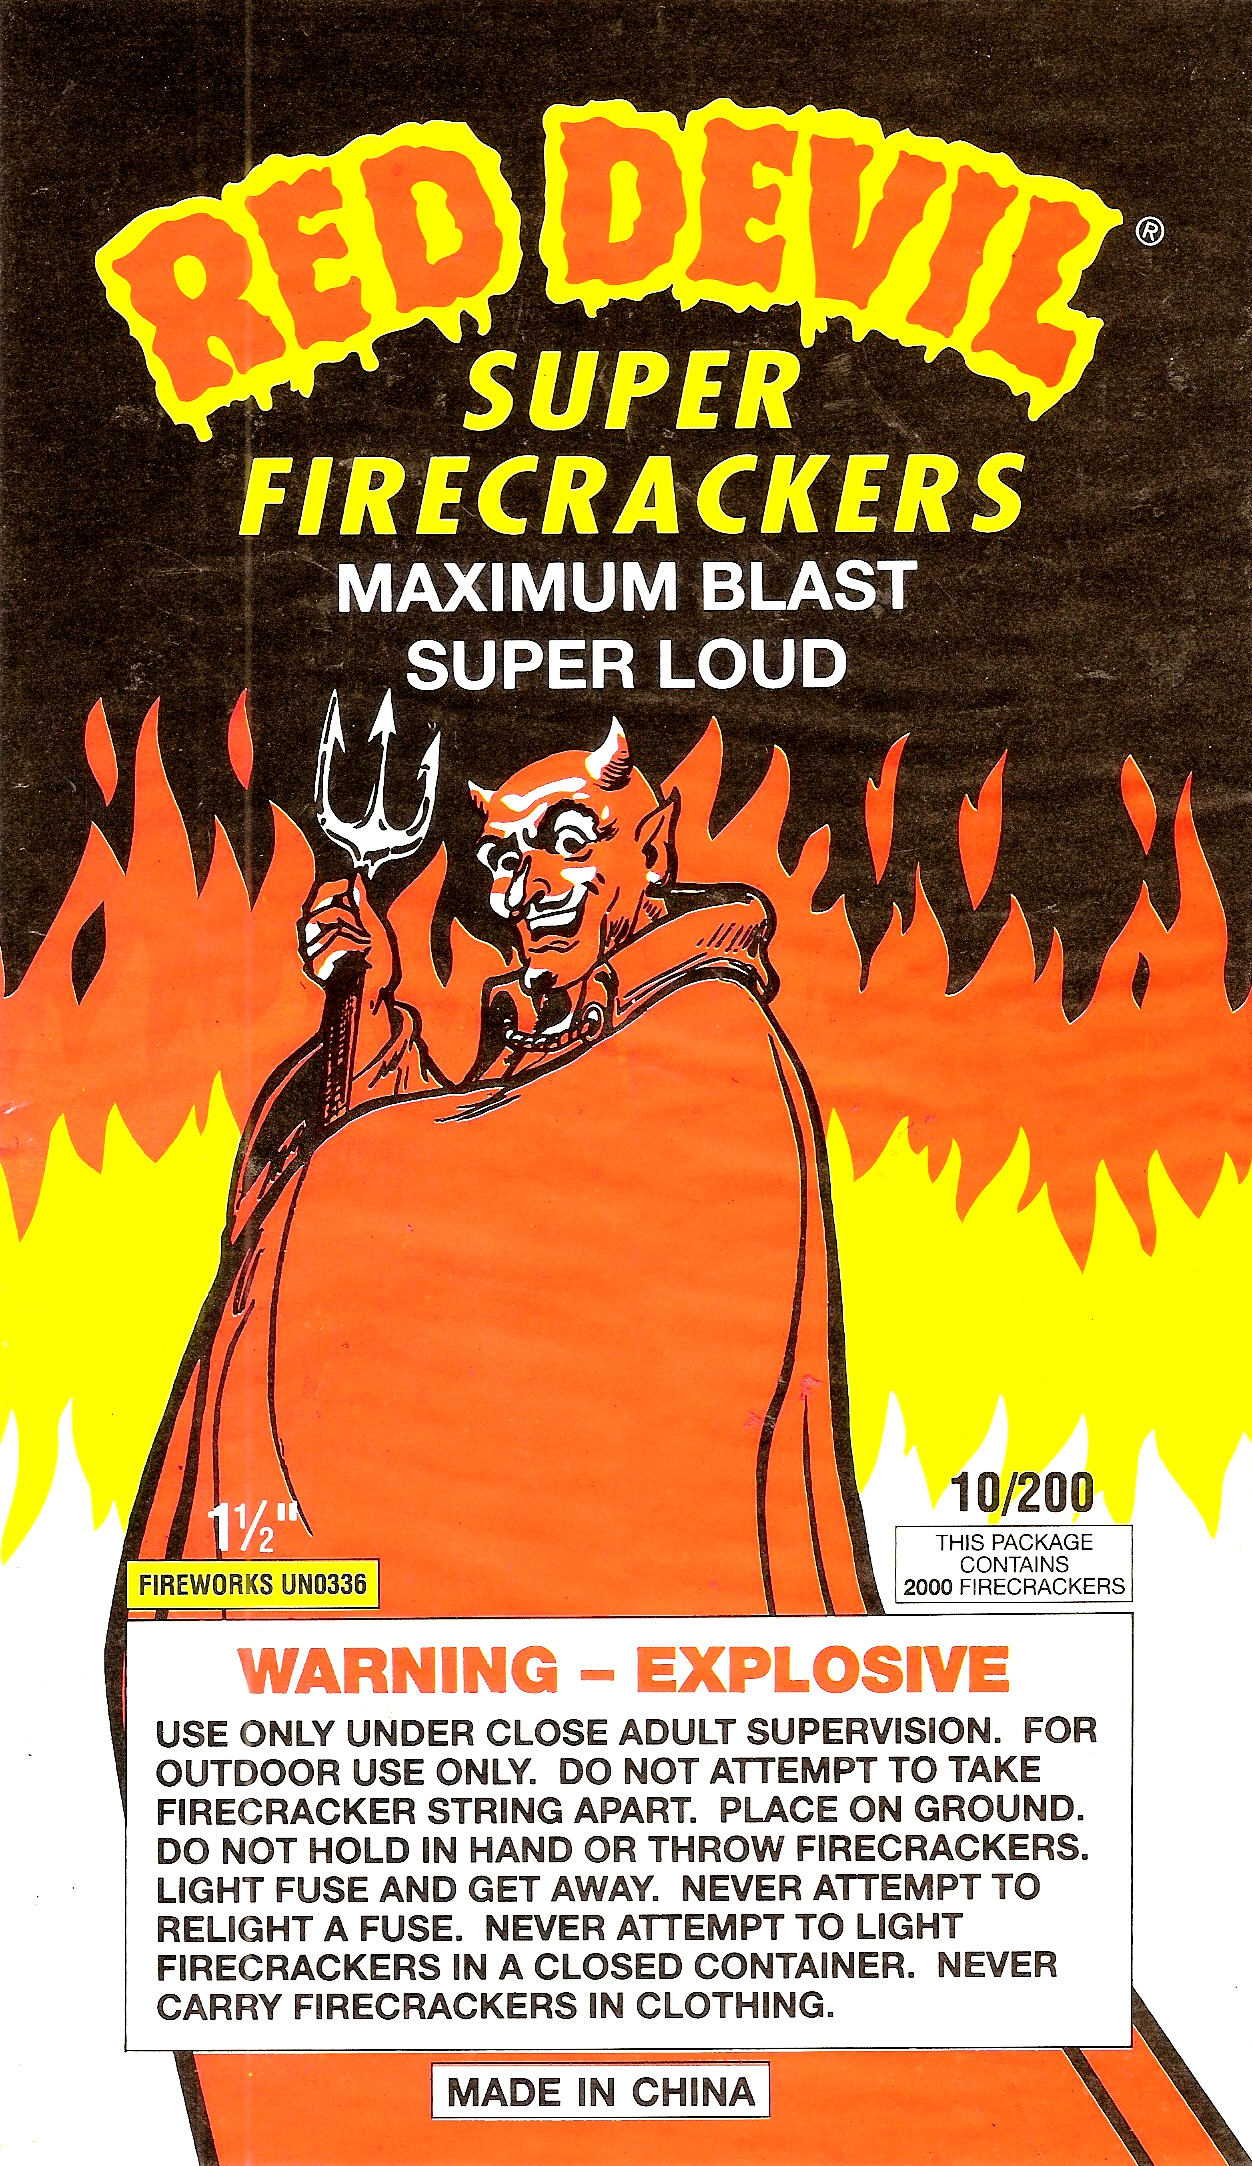 Red Devil - Firecracker Brick Label